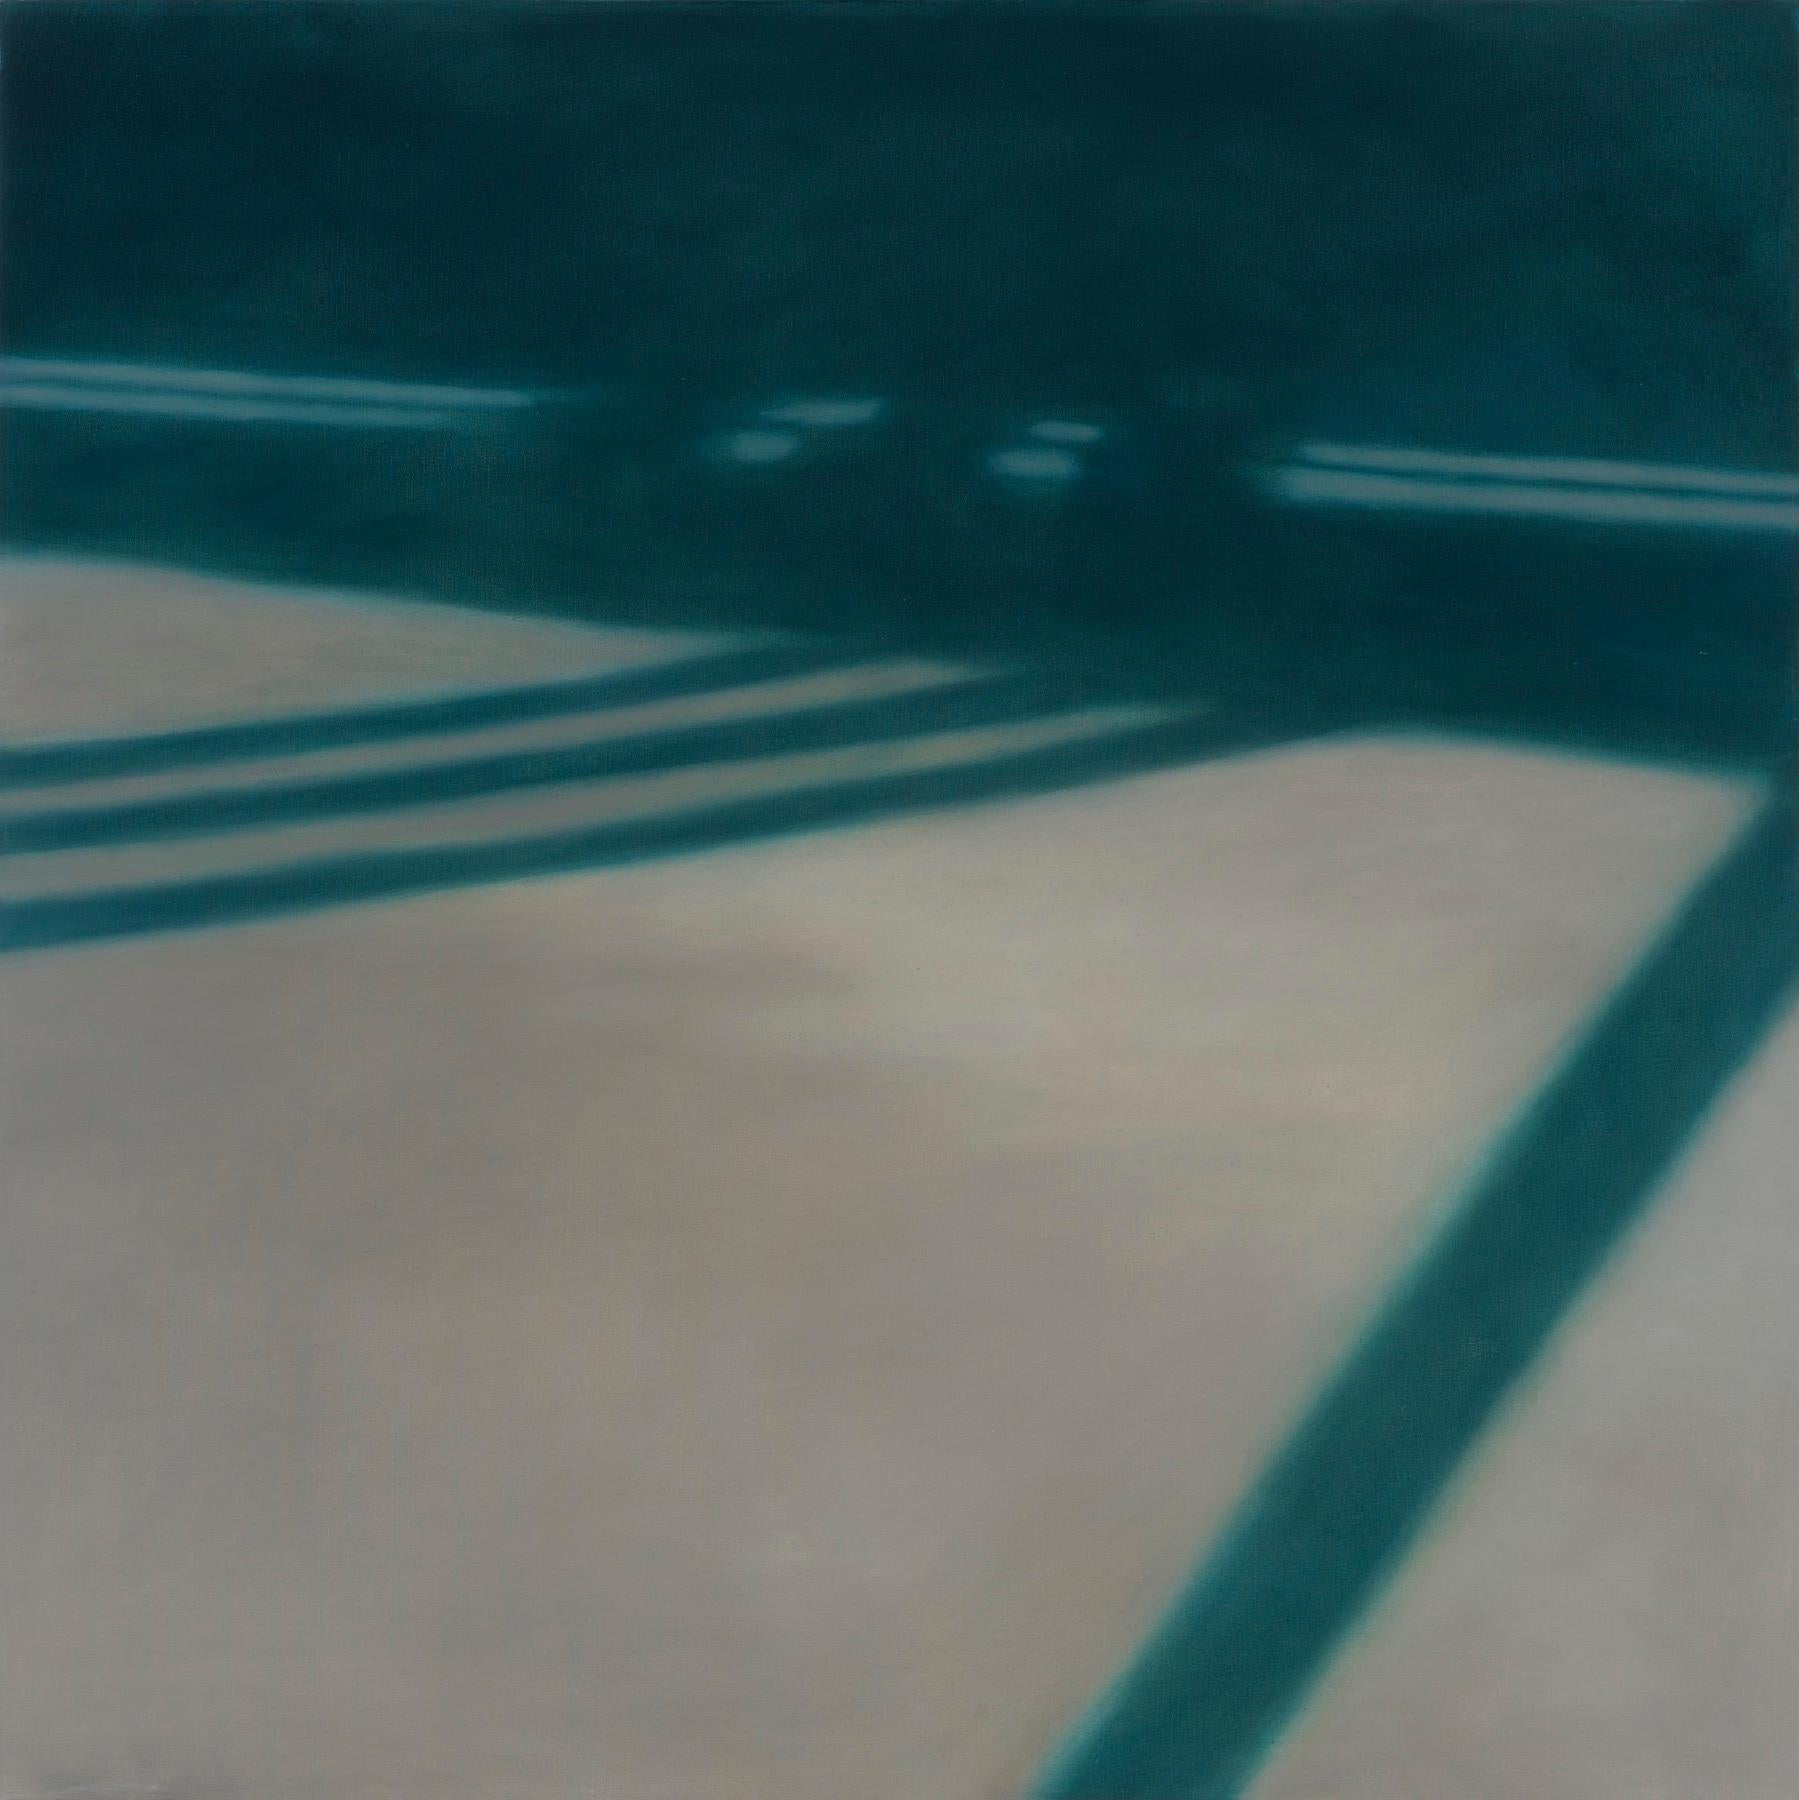 Reflections on Crossing XXV / abstract realism, architecture, minimalism